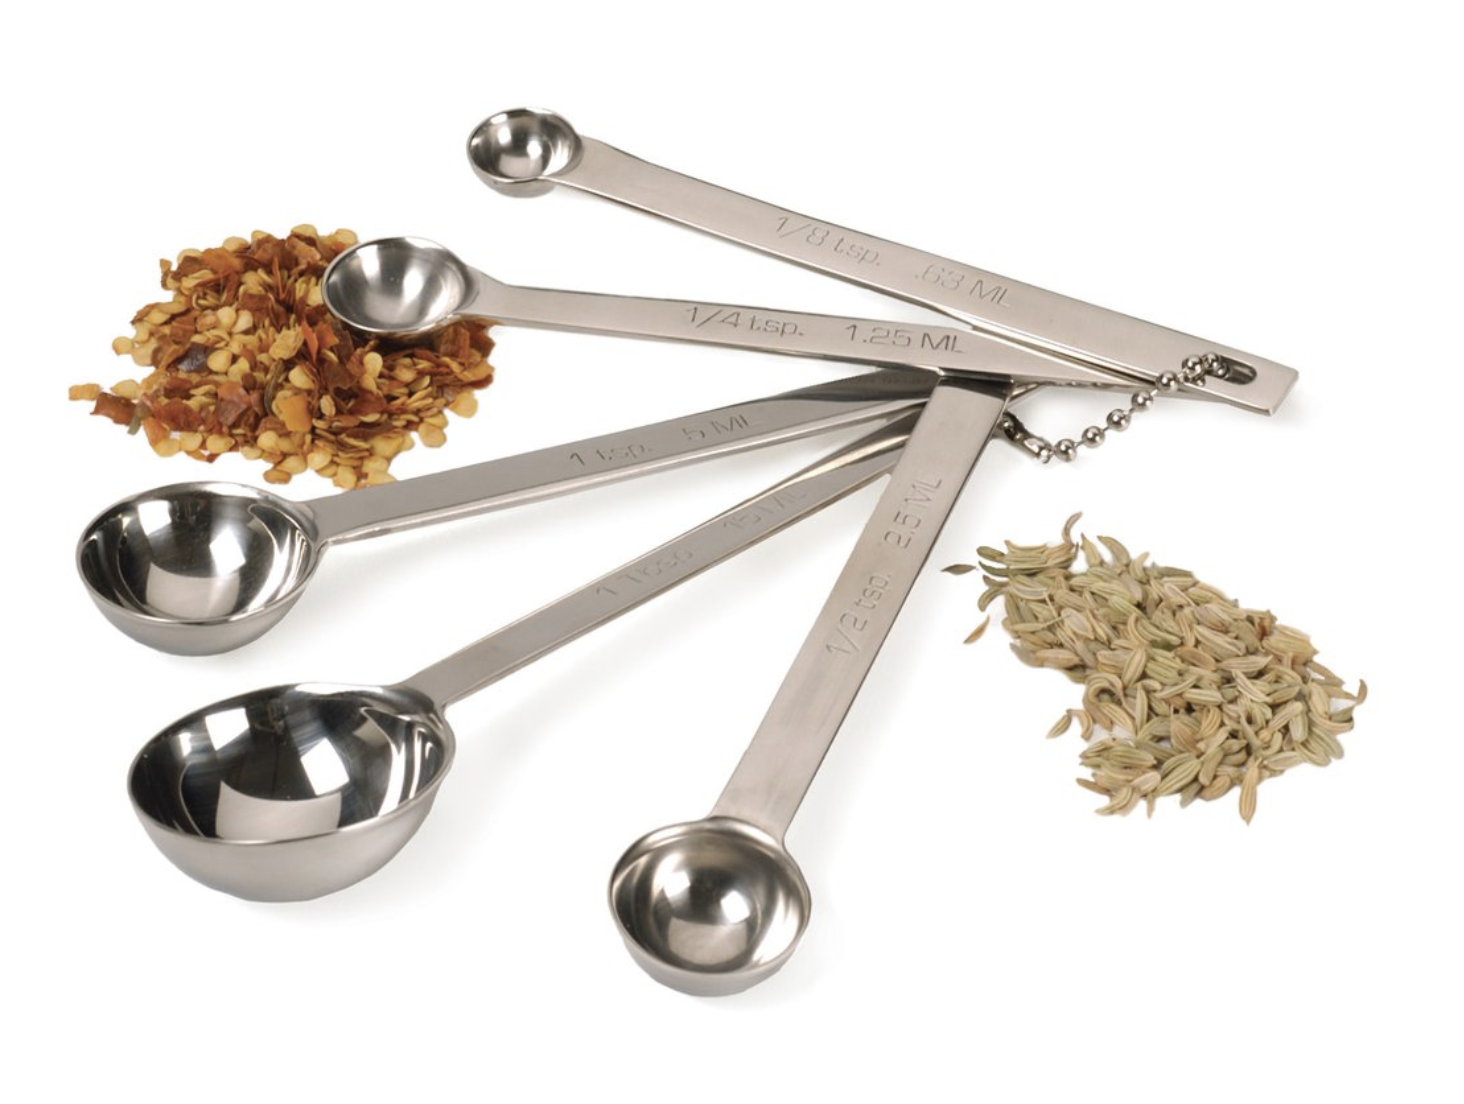 Measuring Spoons, Stainless Steel 5 pc